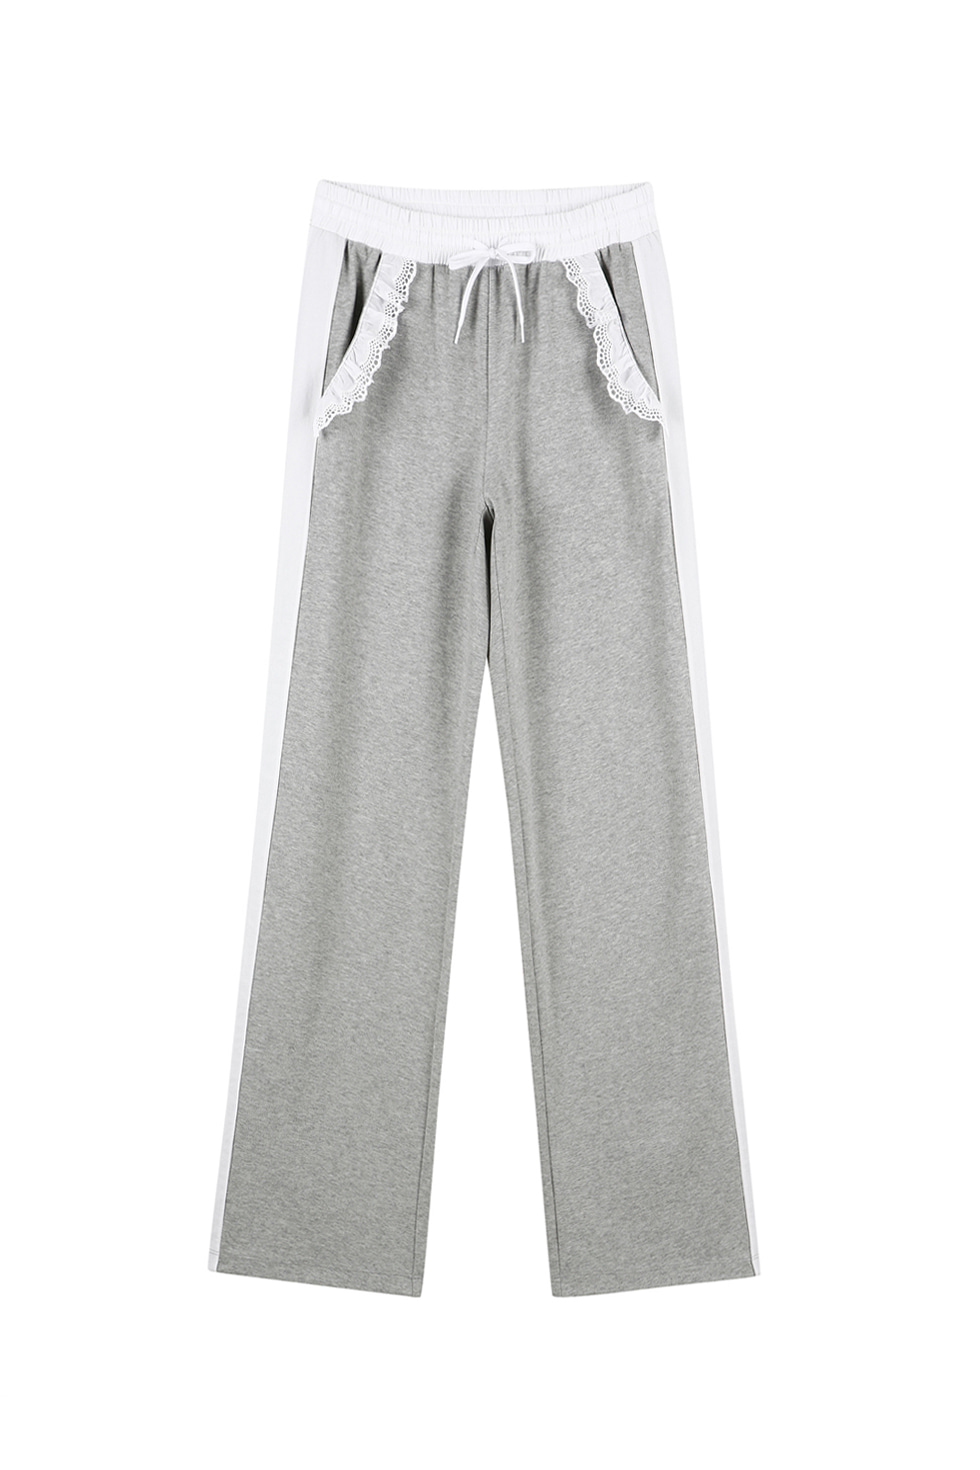 COTTON RUFFLE JERSEY PANTS - GREY